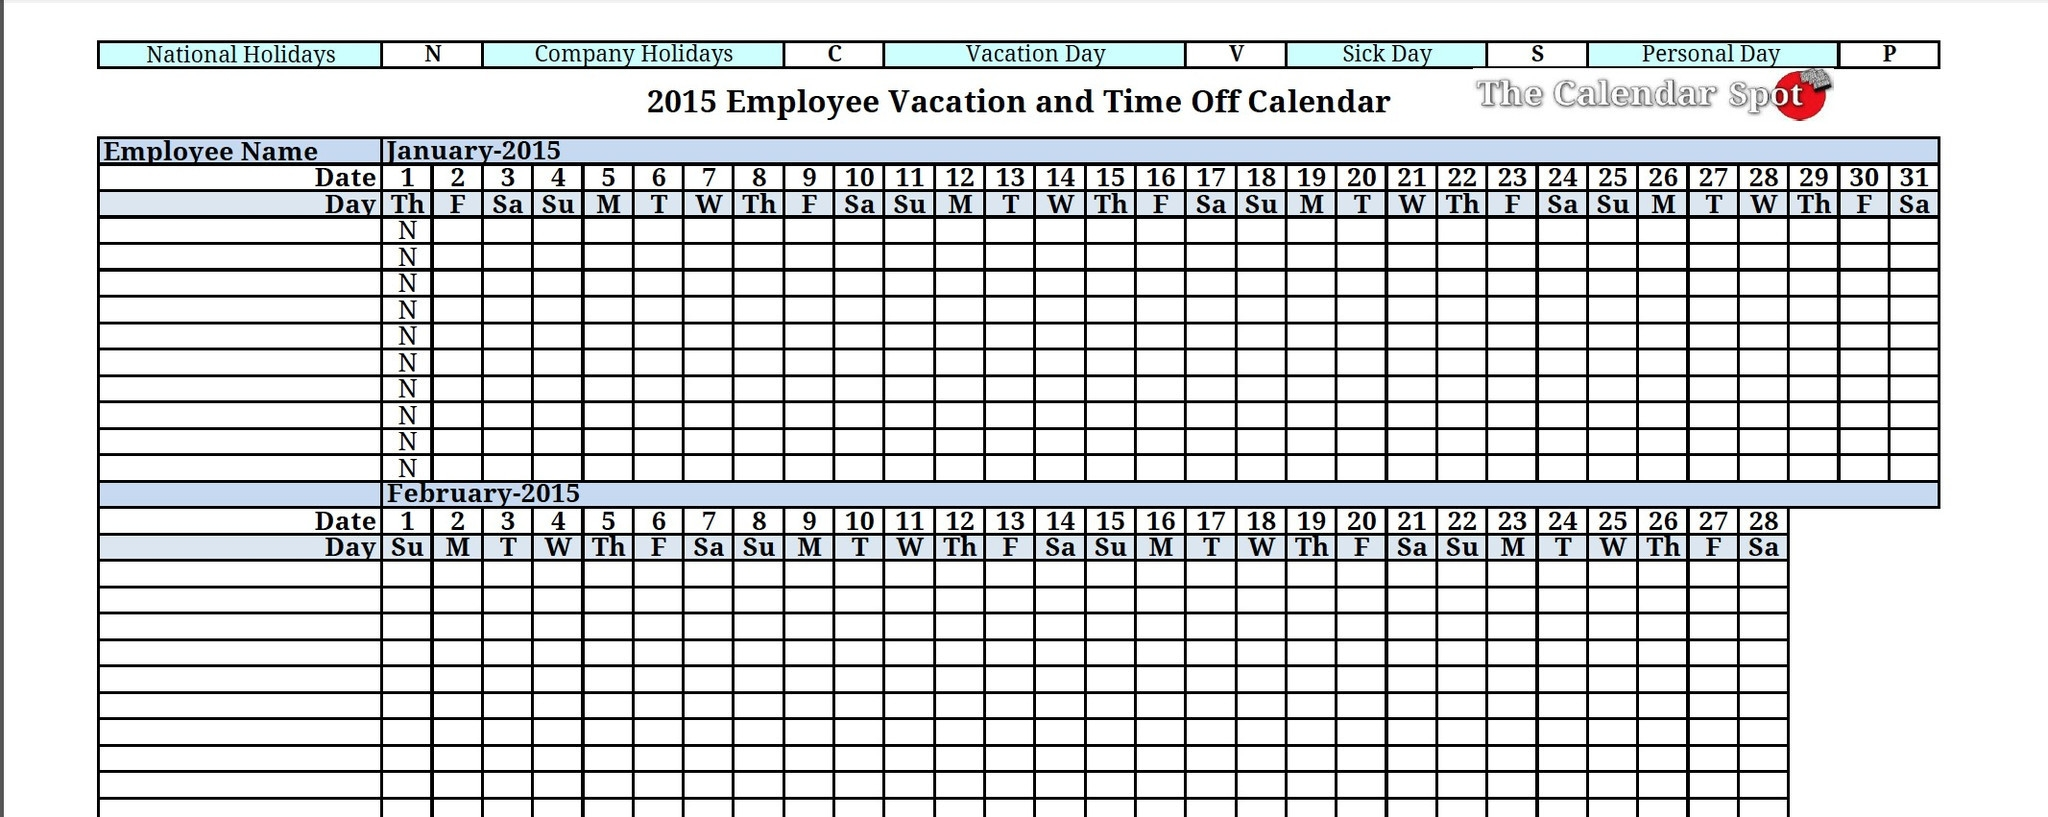 Employee Vacation Calendar Template 2015 Templates Resume3abry